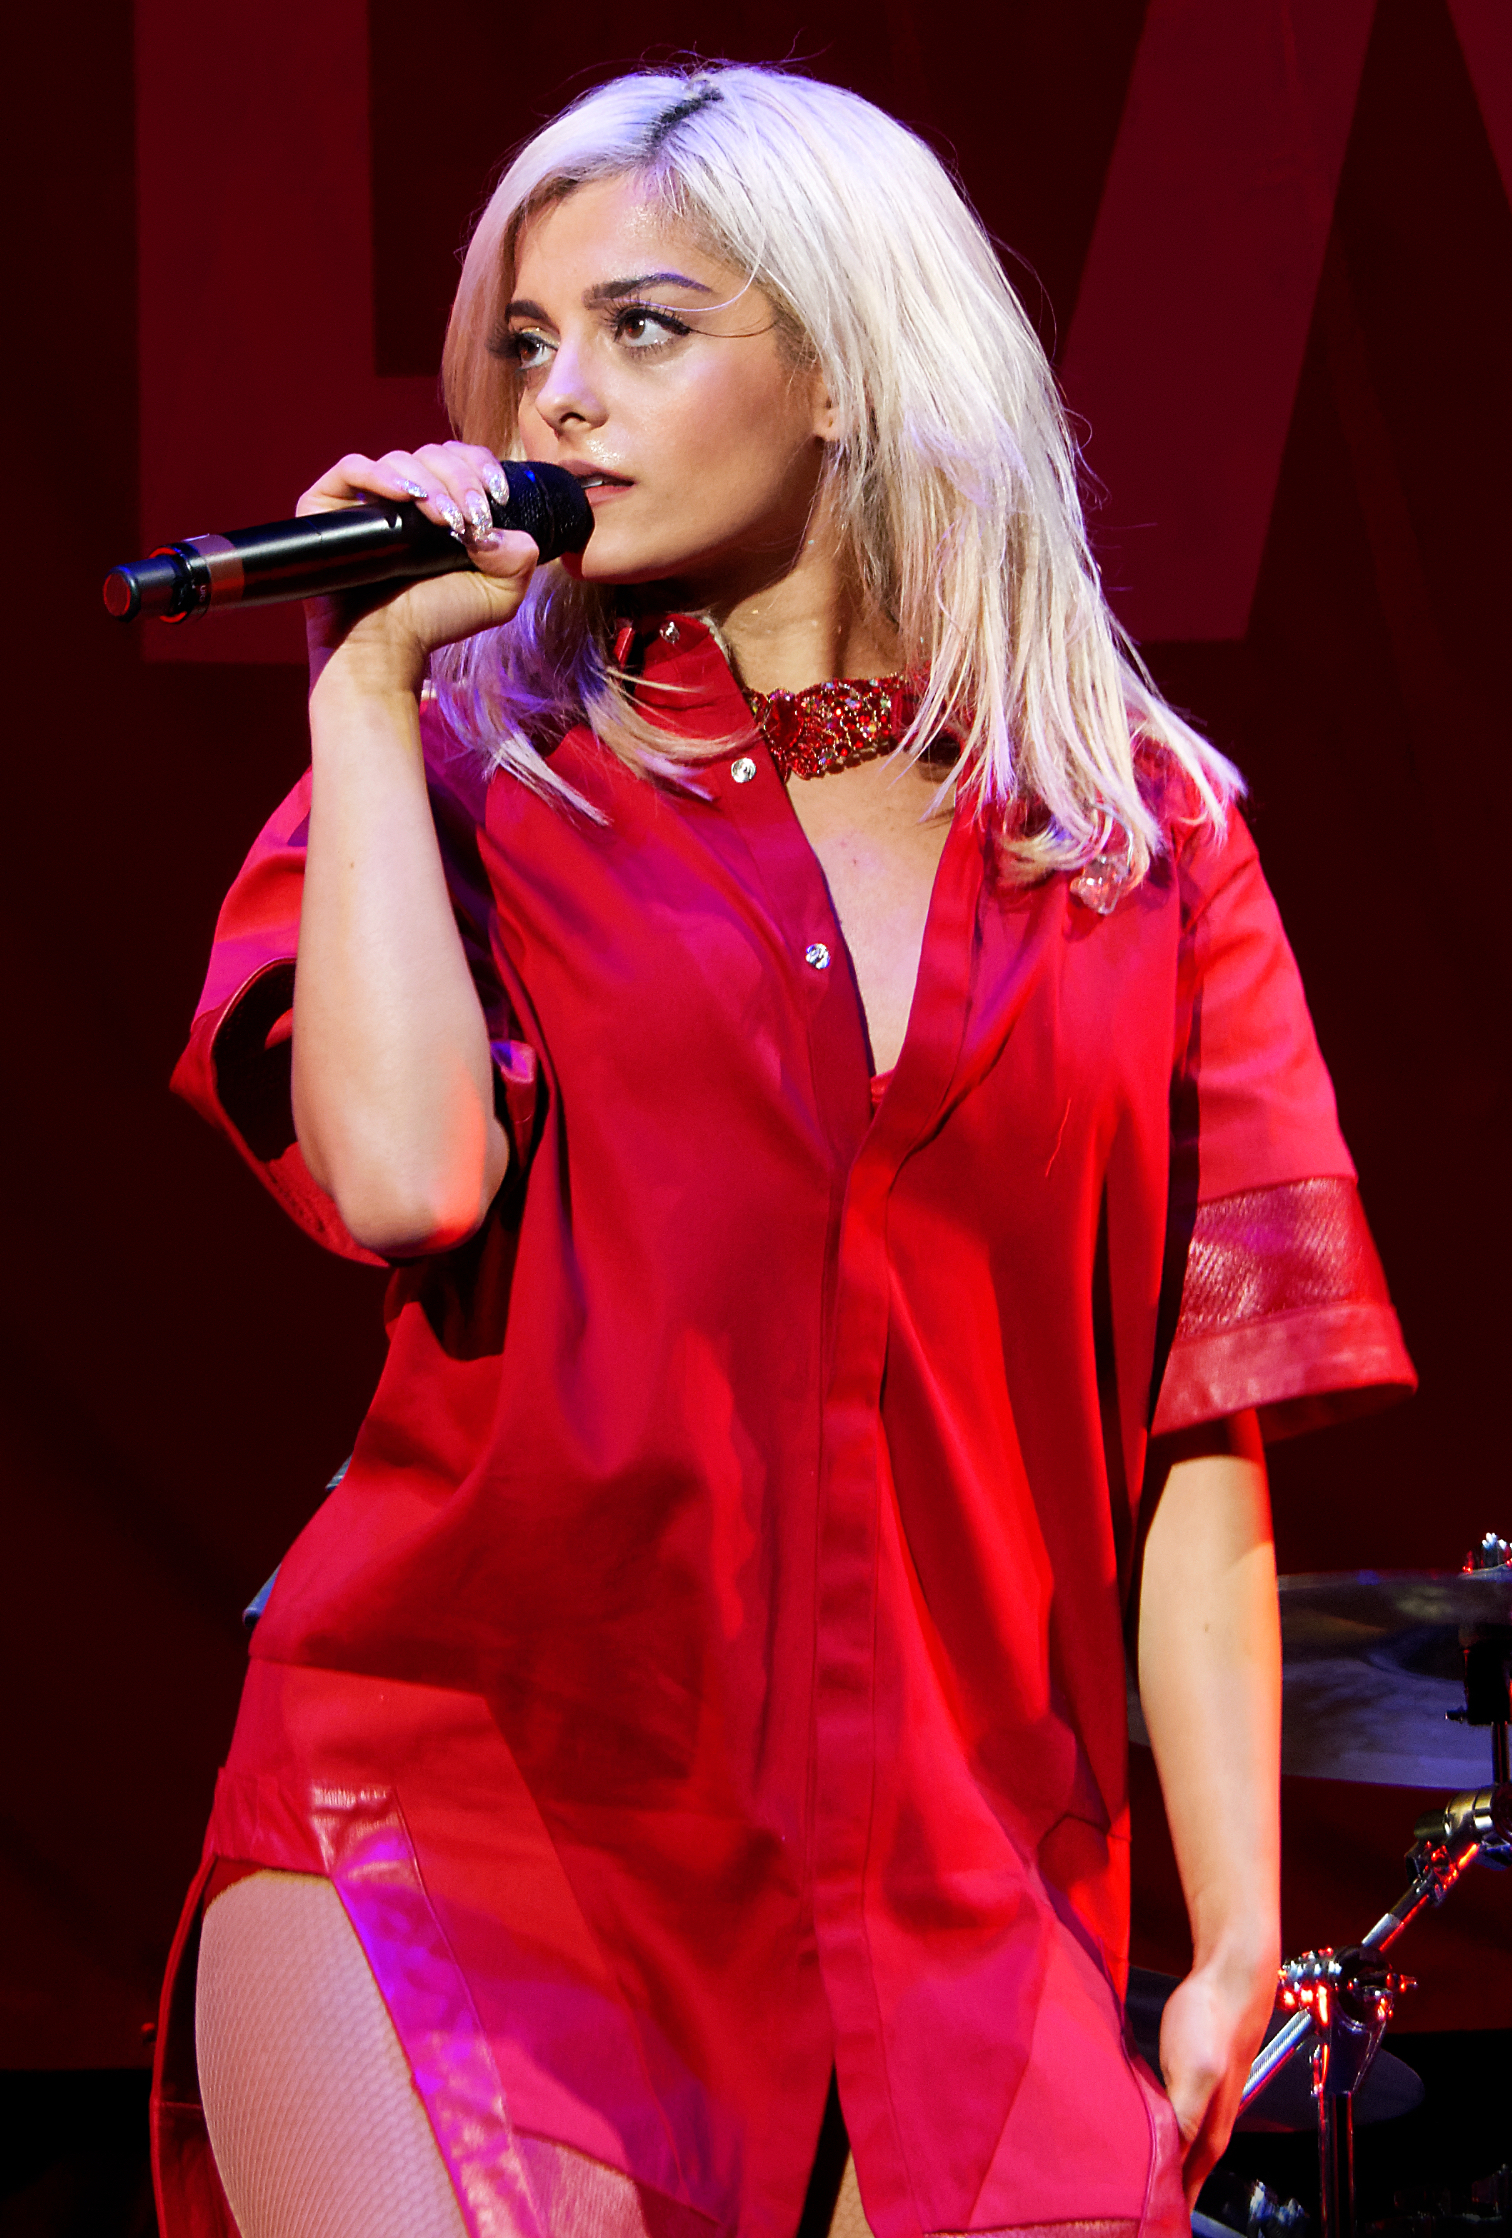 The 29-year old daughter of father (?) and mother(?) Bebe Rexha in 2018 photo. Bebe Rexha earned a  million dollar salary - leaving the net worth at 0.65 million in 2018